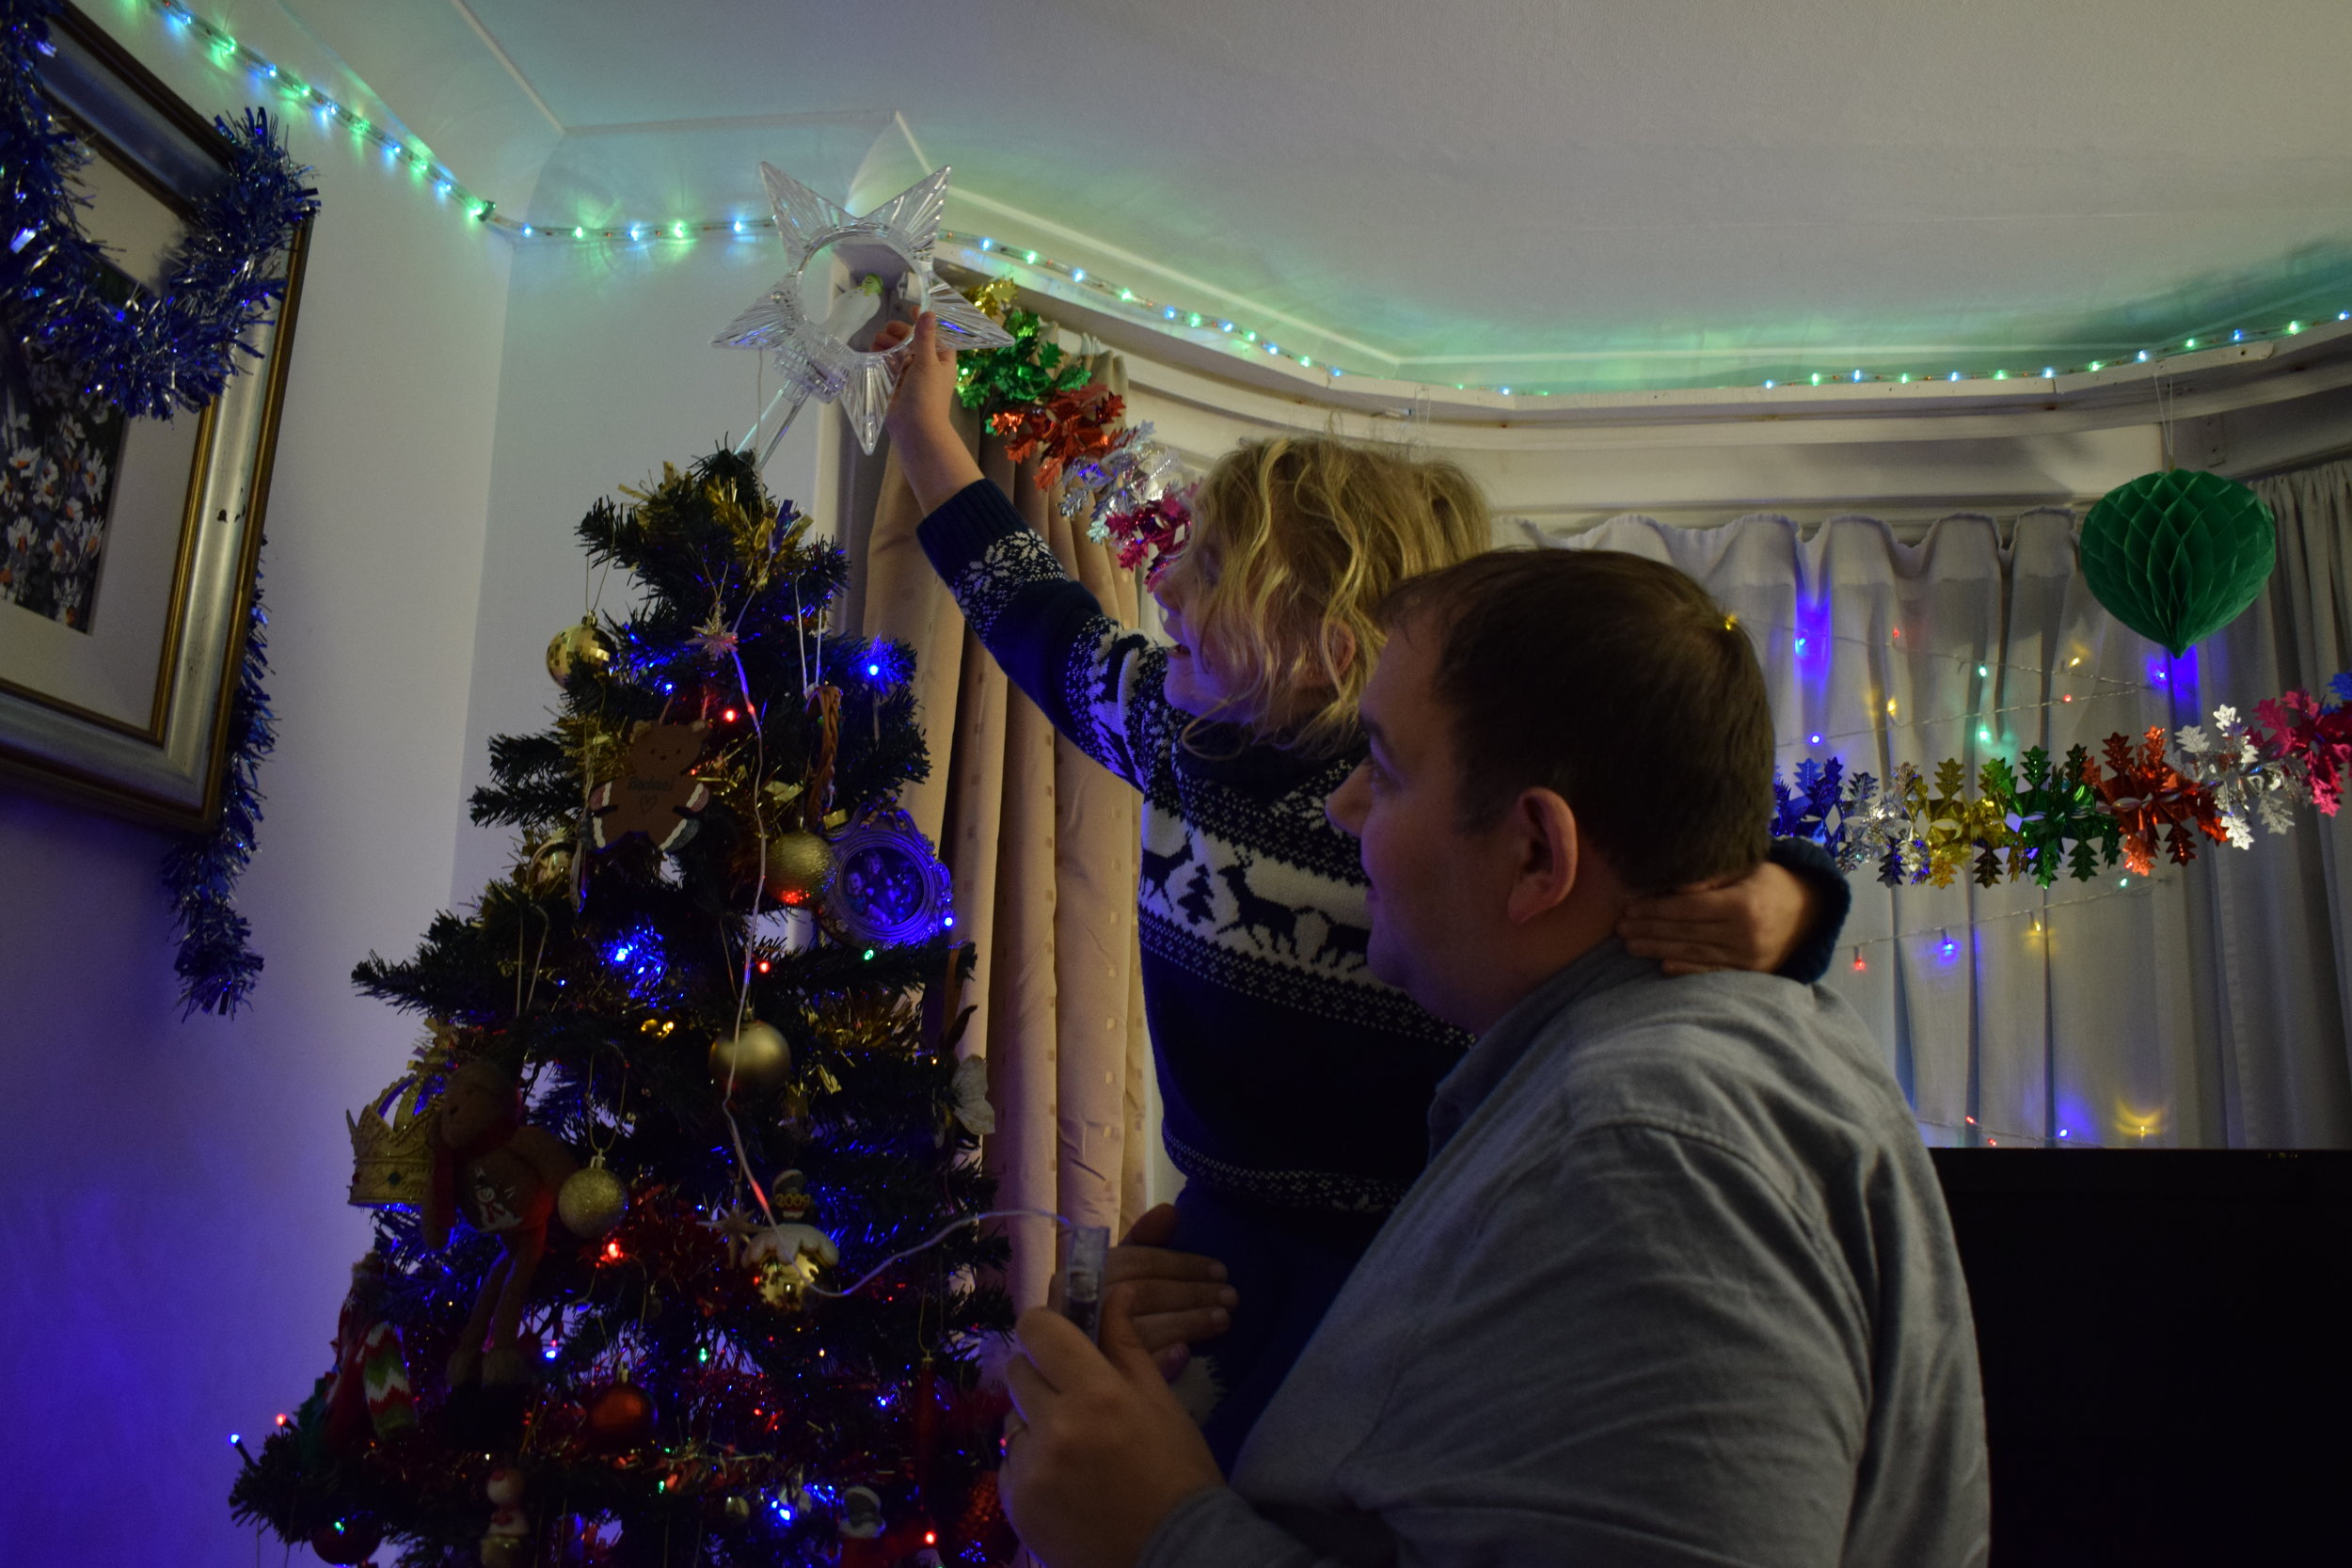 Putting the star on top of the Christmas tree